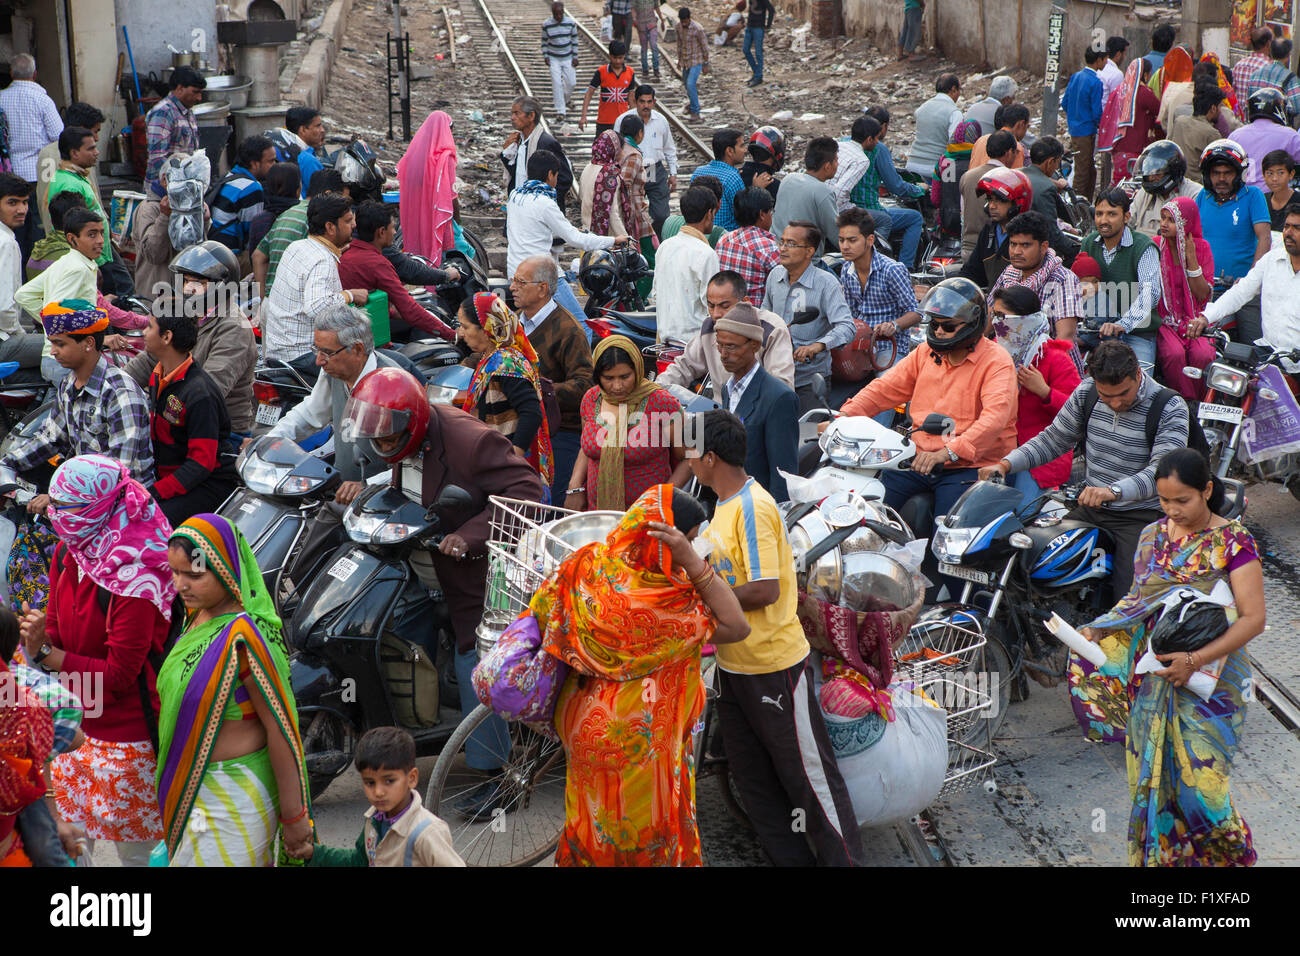 Congestion at a railway crossing in Bikaner - Stock Image